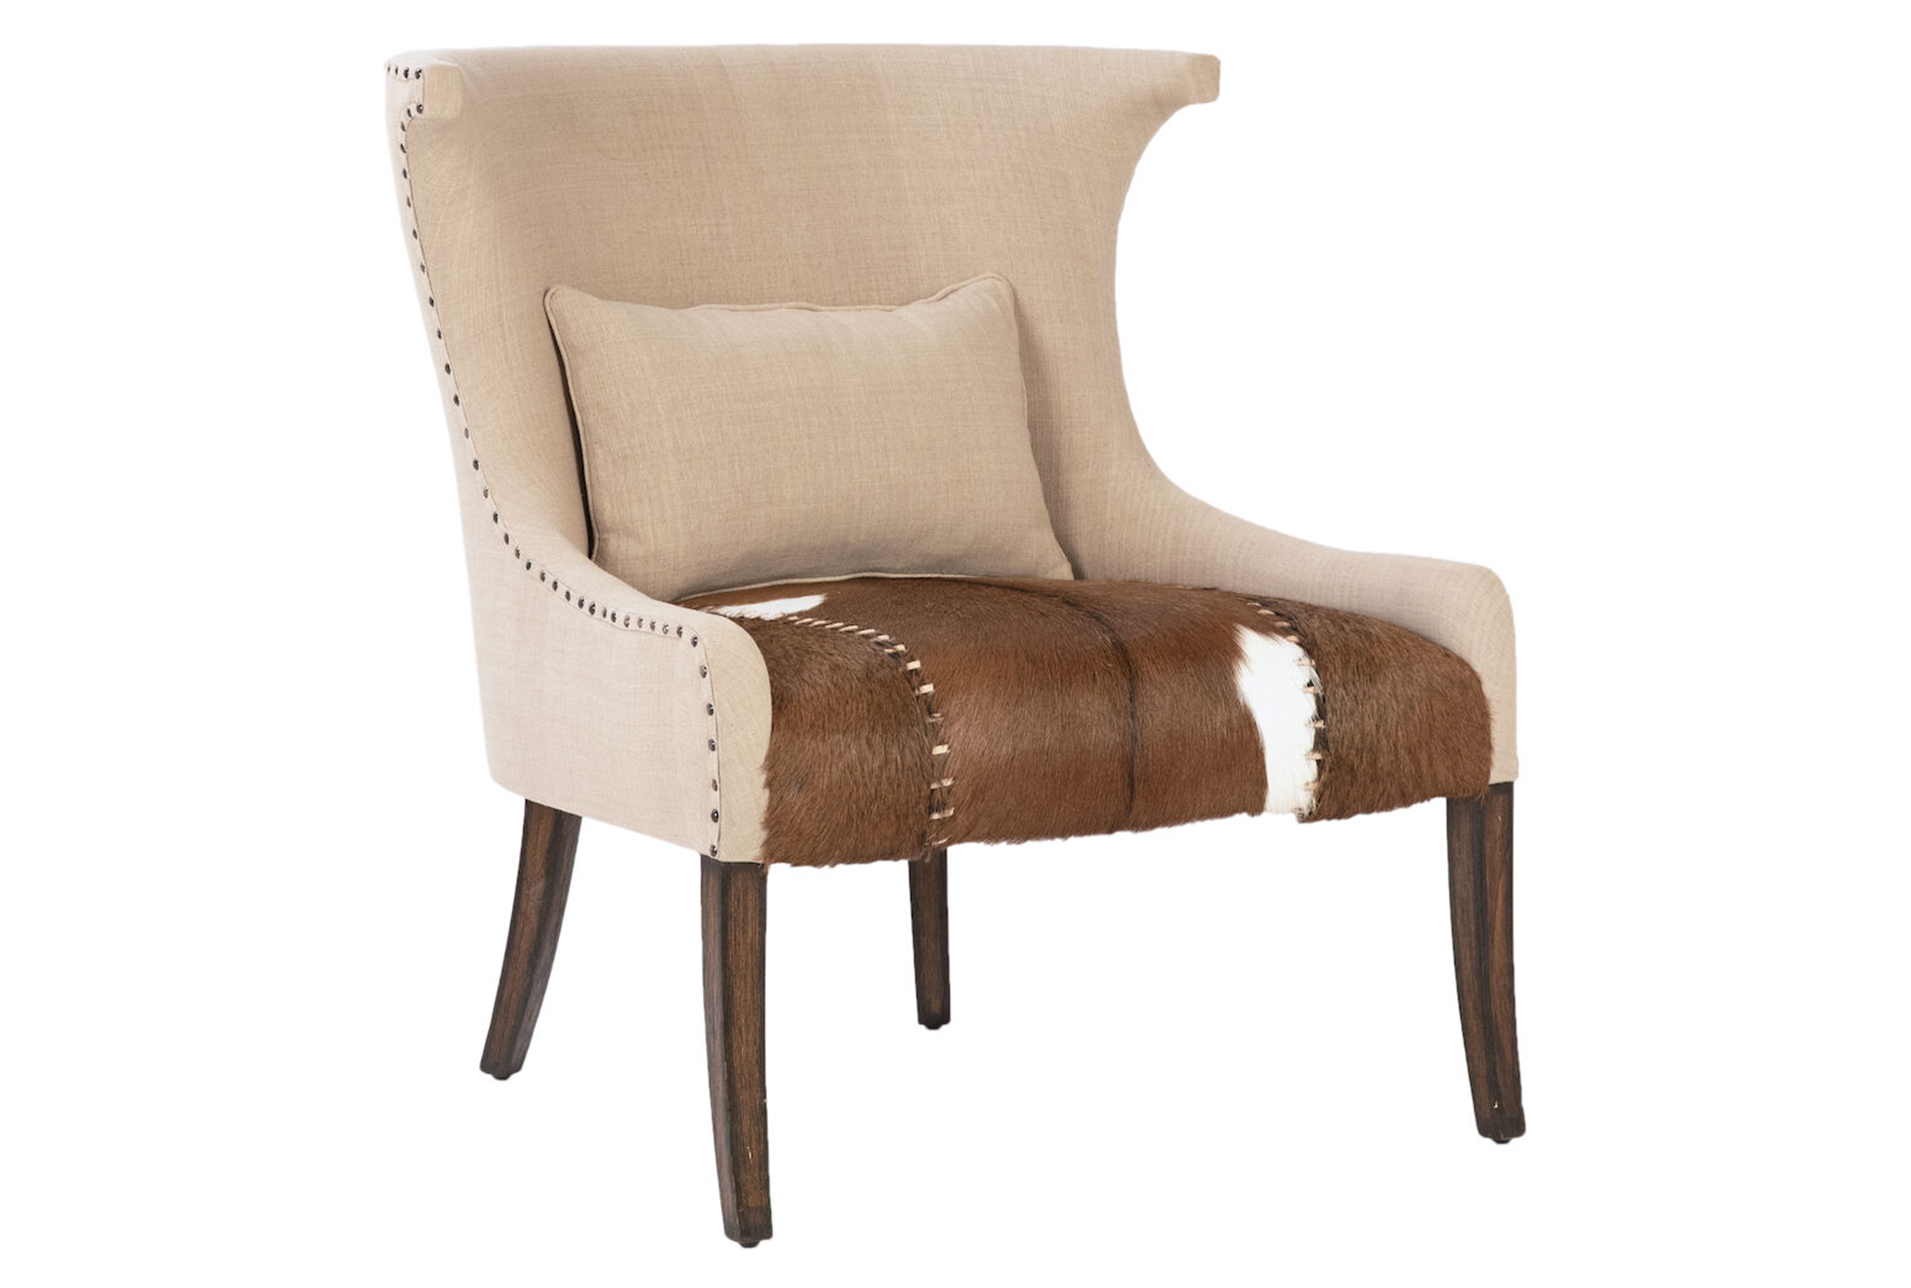 Beige With Cowhide Seat Accent Chair